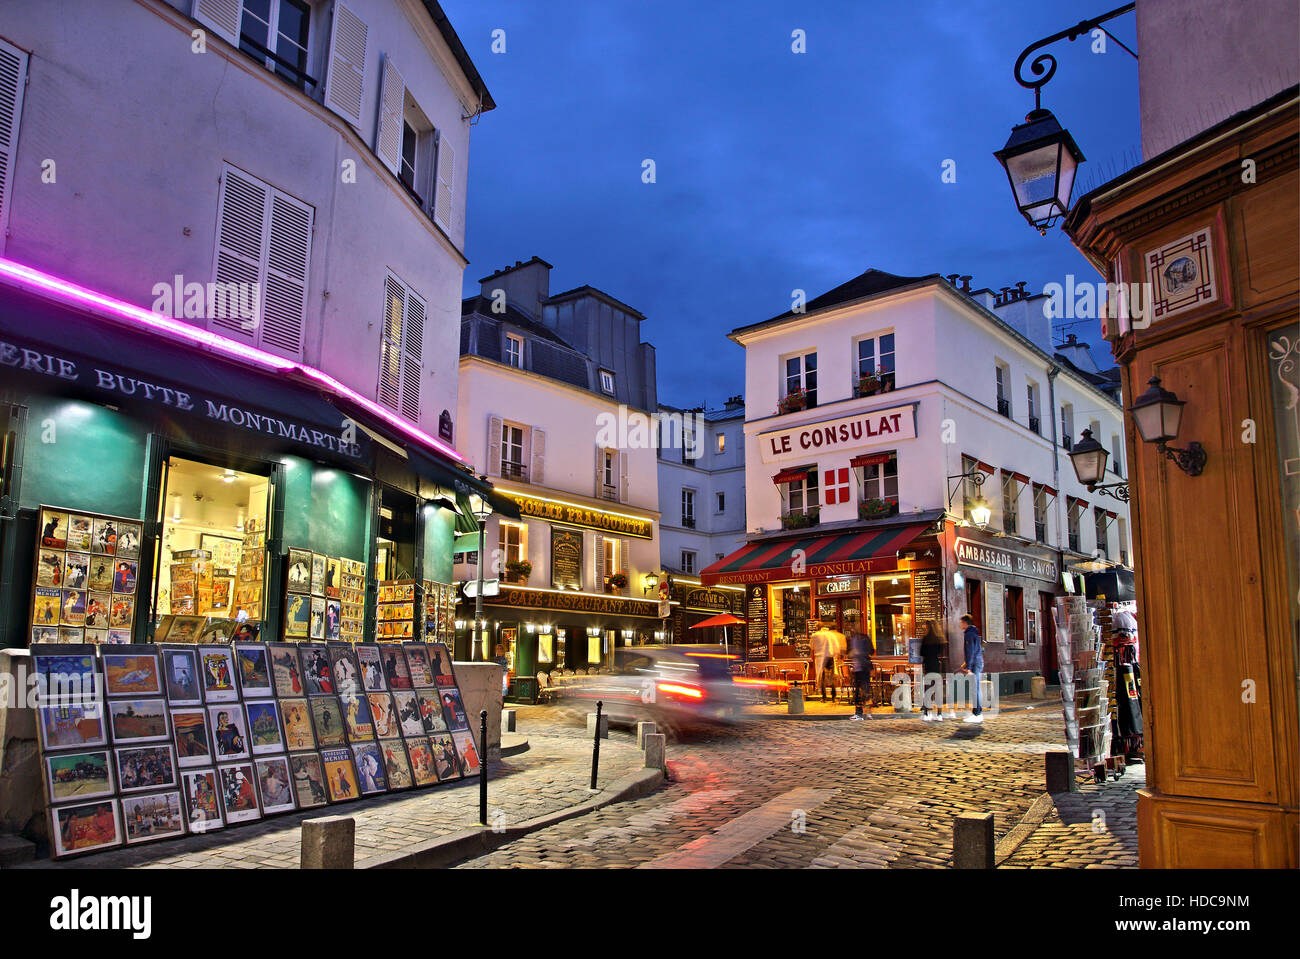 Balade dans les ruelles pittoresques de la 'bohemian' quartier de Montmartre, Paris, France Photo Stock